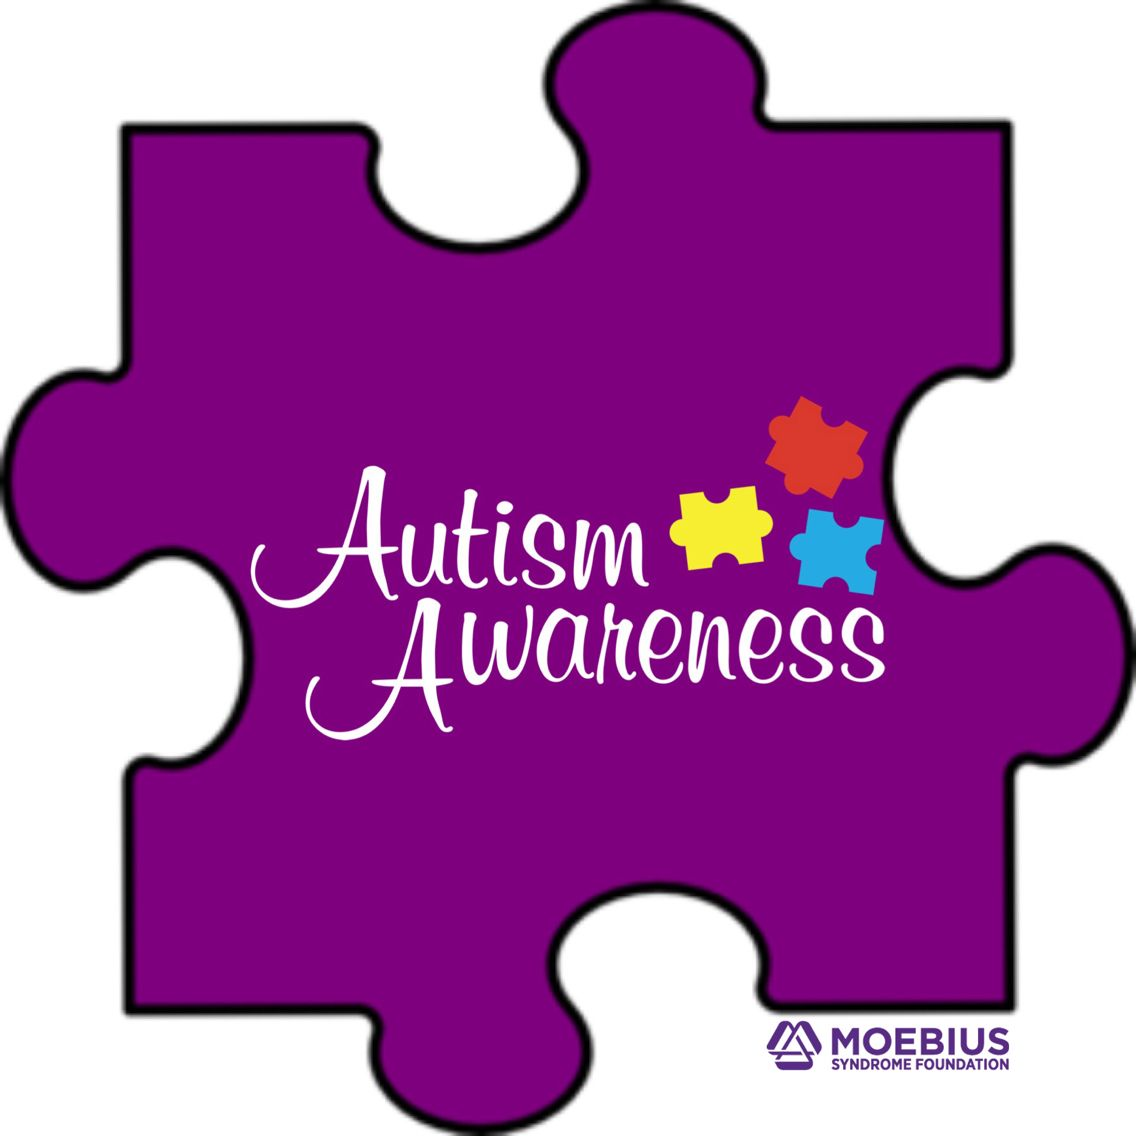 Celebrating #autismawareness and supporting those in the #MoebiusSyndrome community affected by #autism.